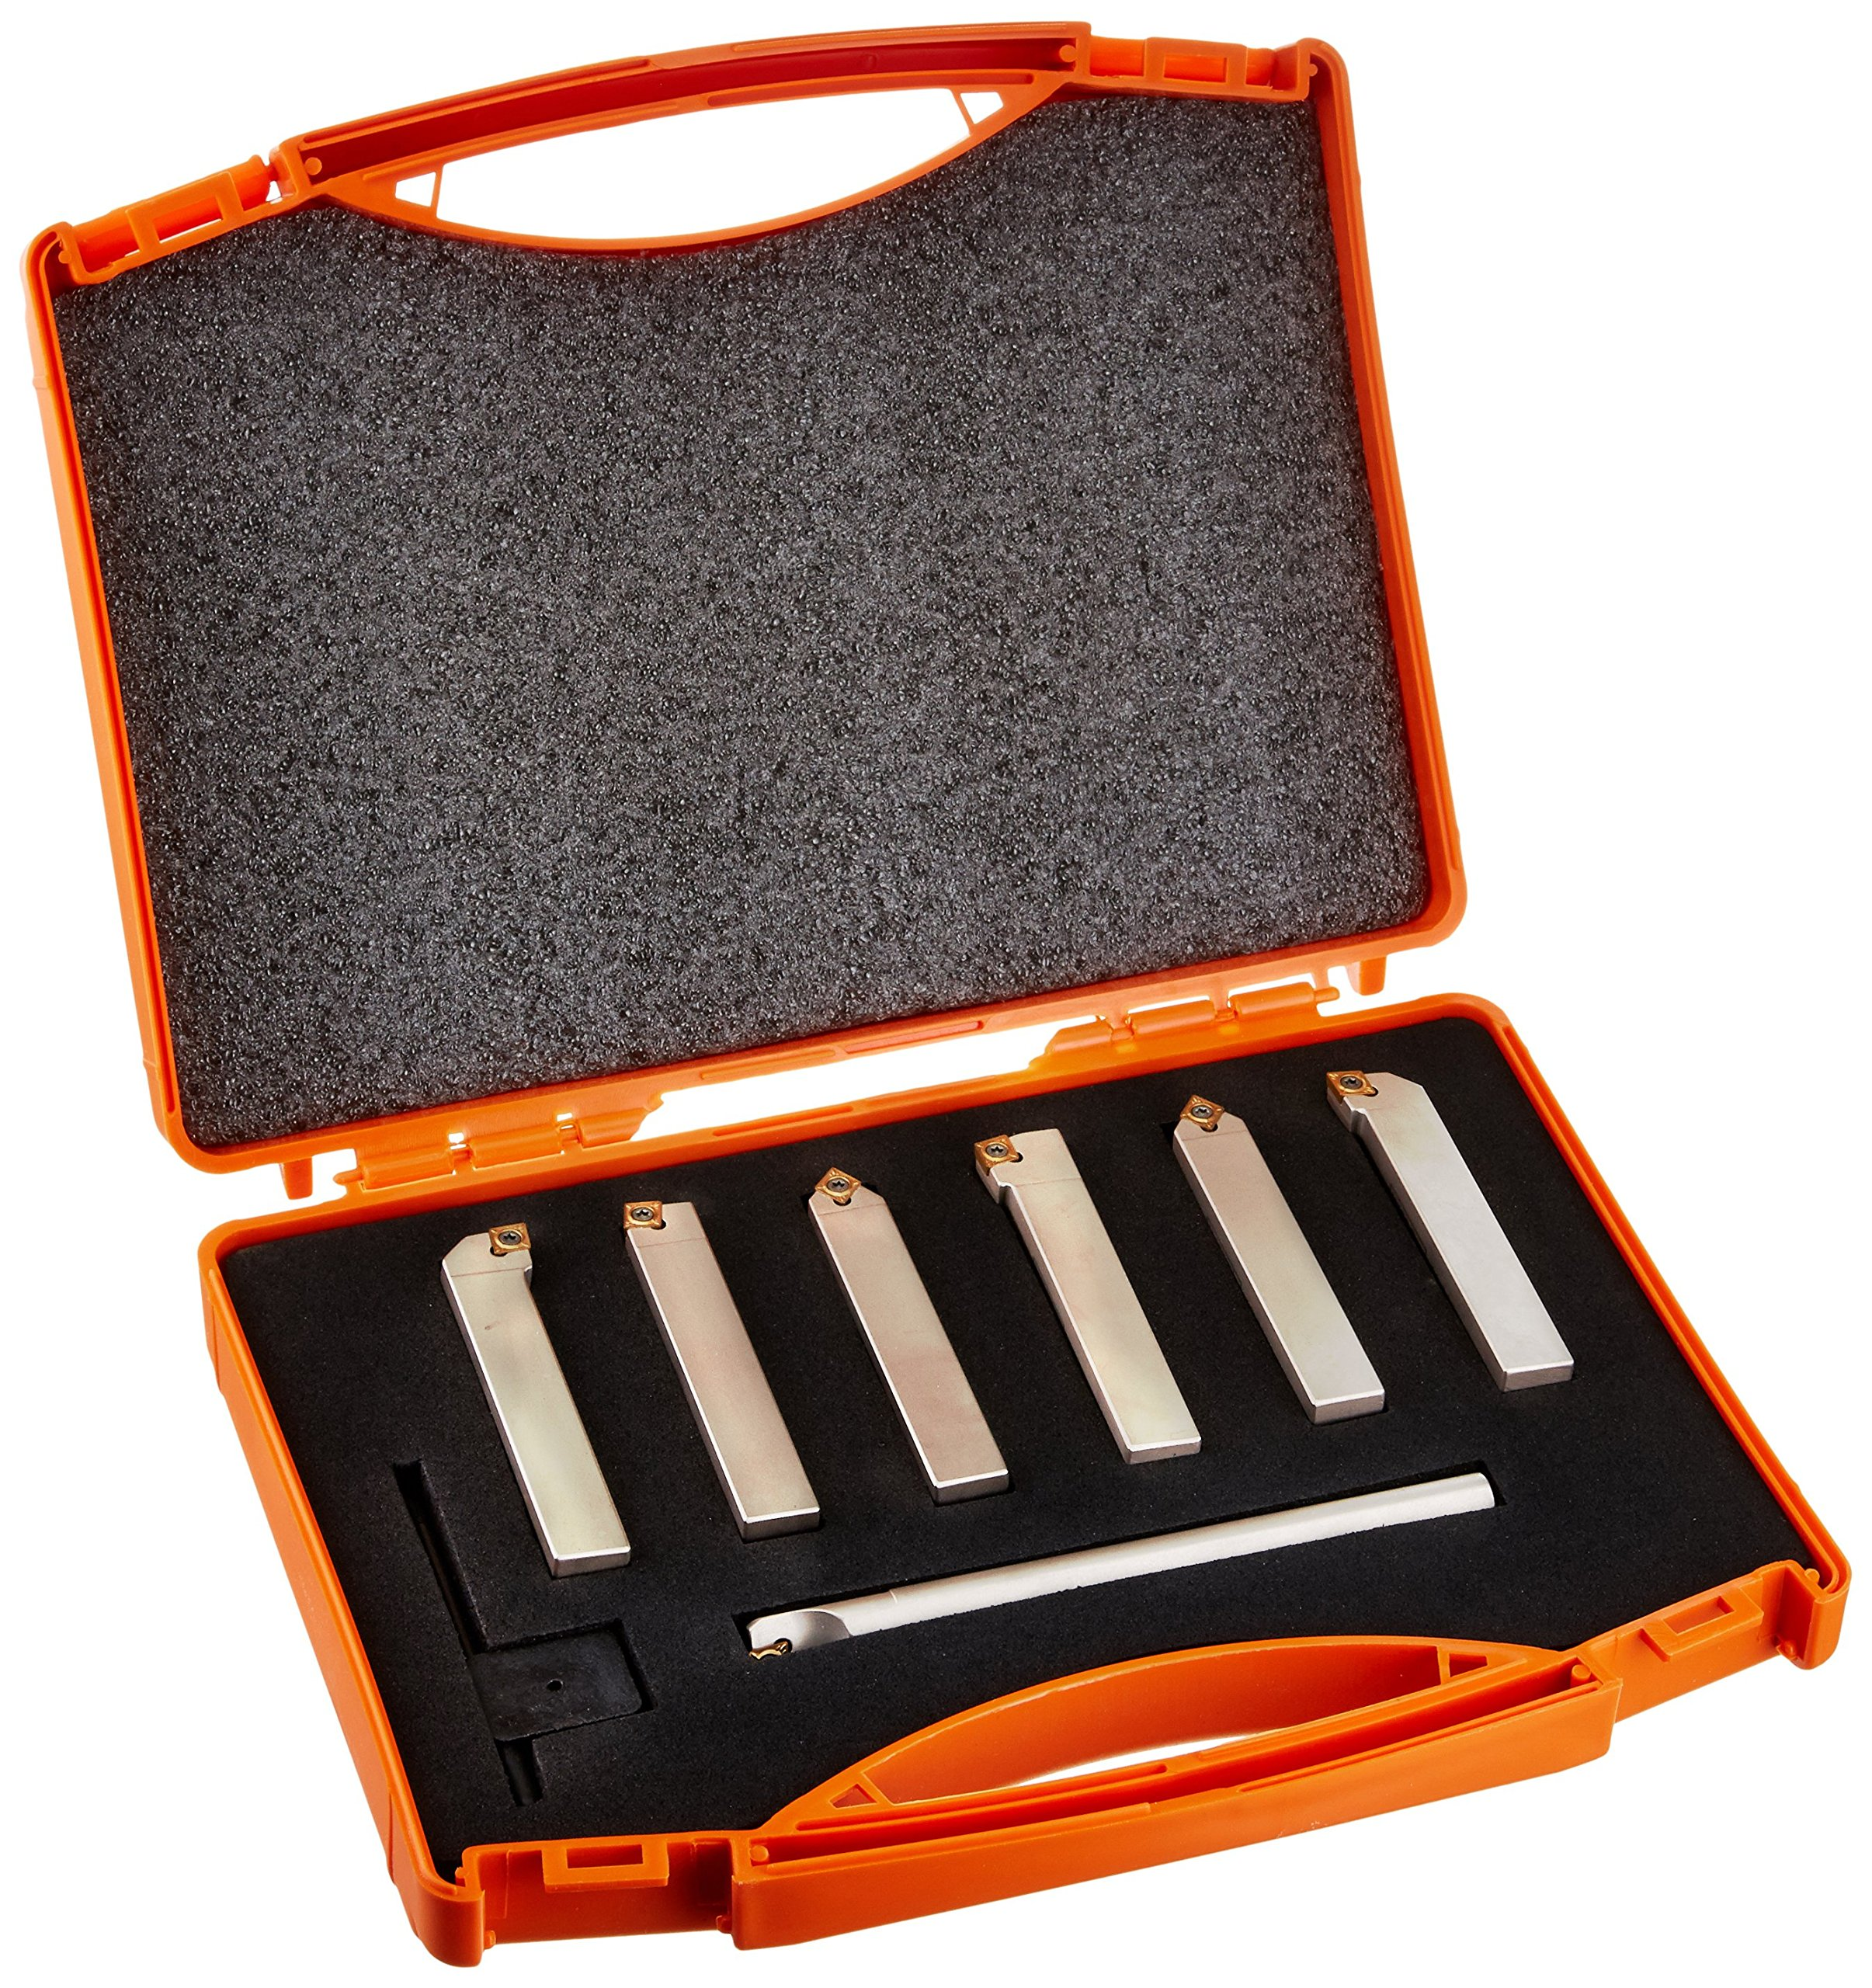 Micro 100 40-7104 Indexable Multi-Purpose 7-piece Set, 1/2'' Tool Shank Diameter